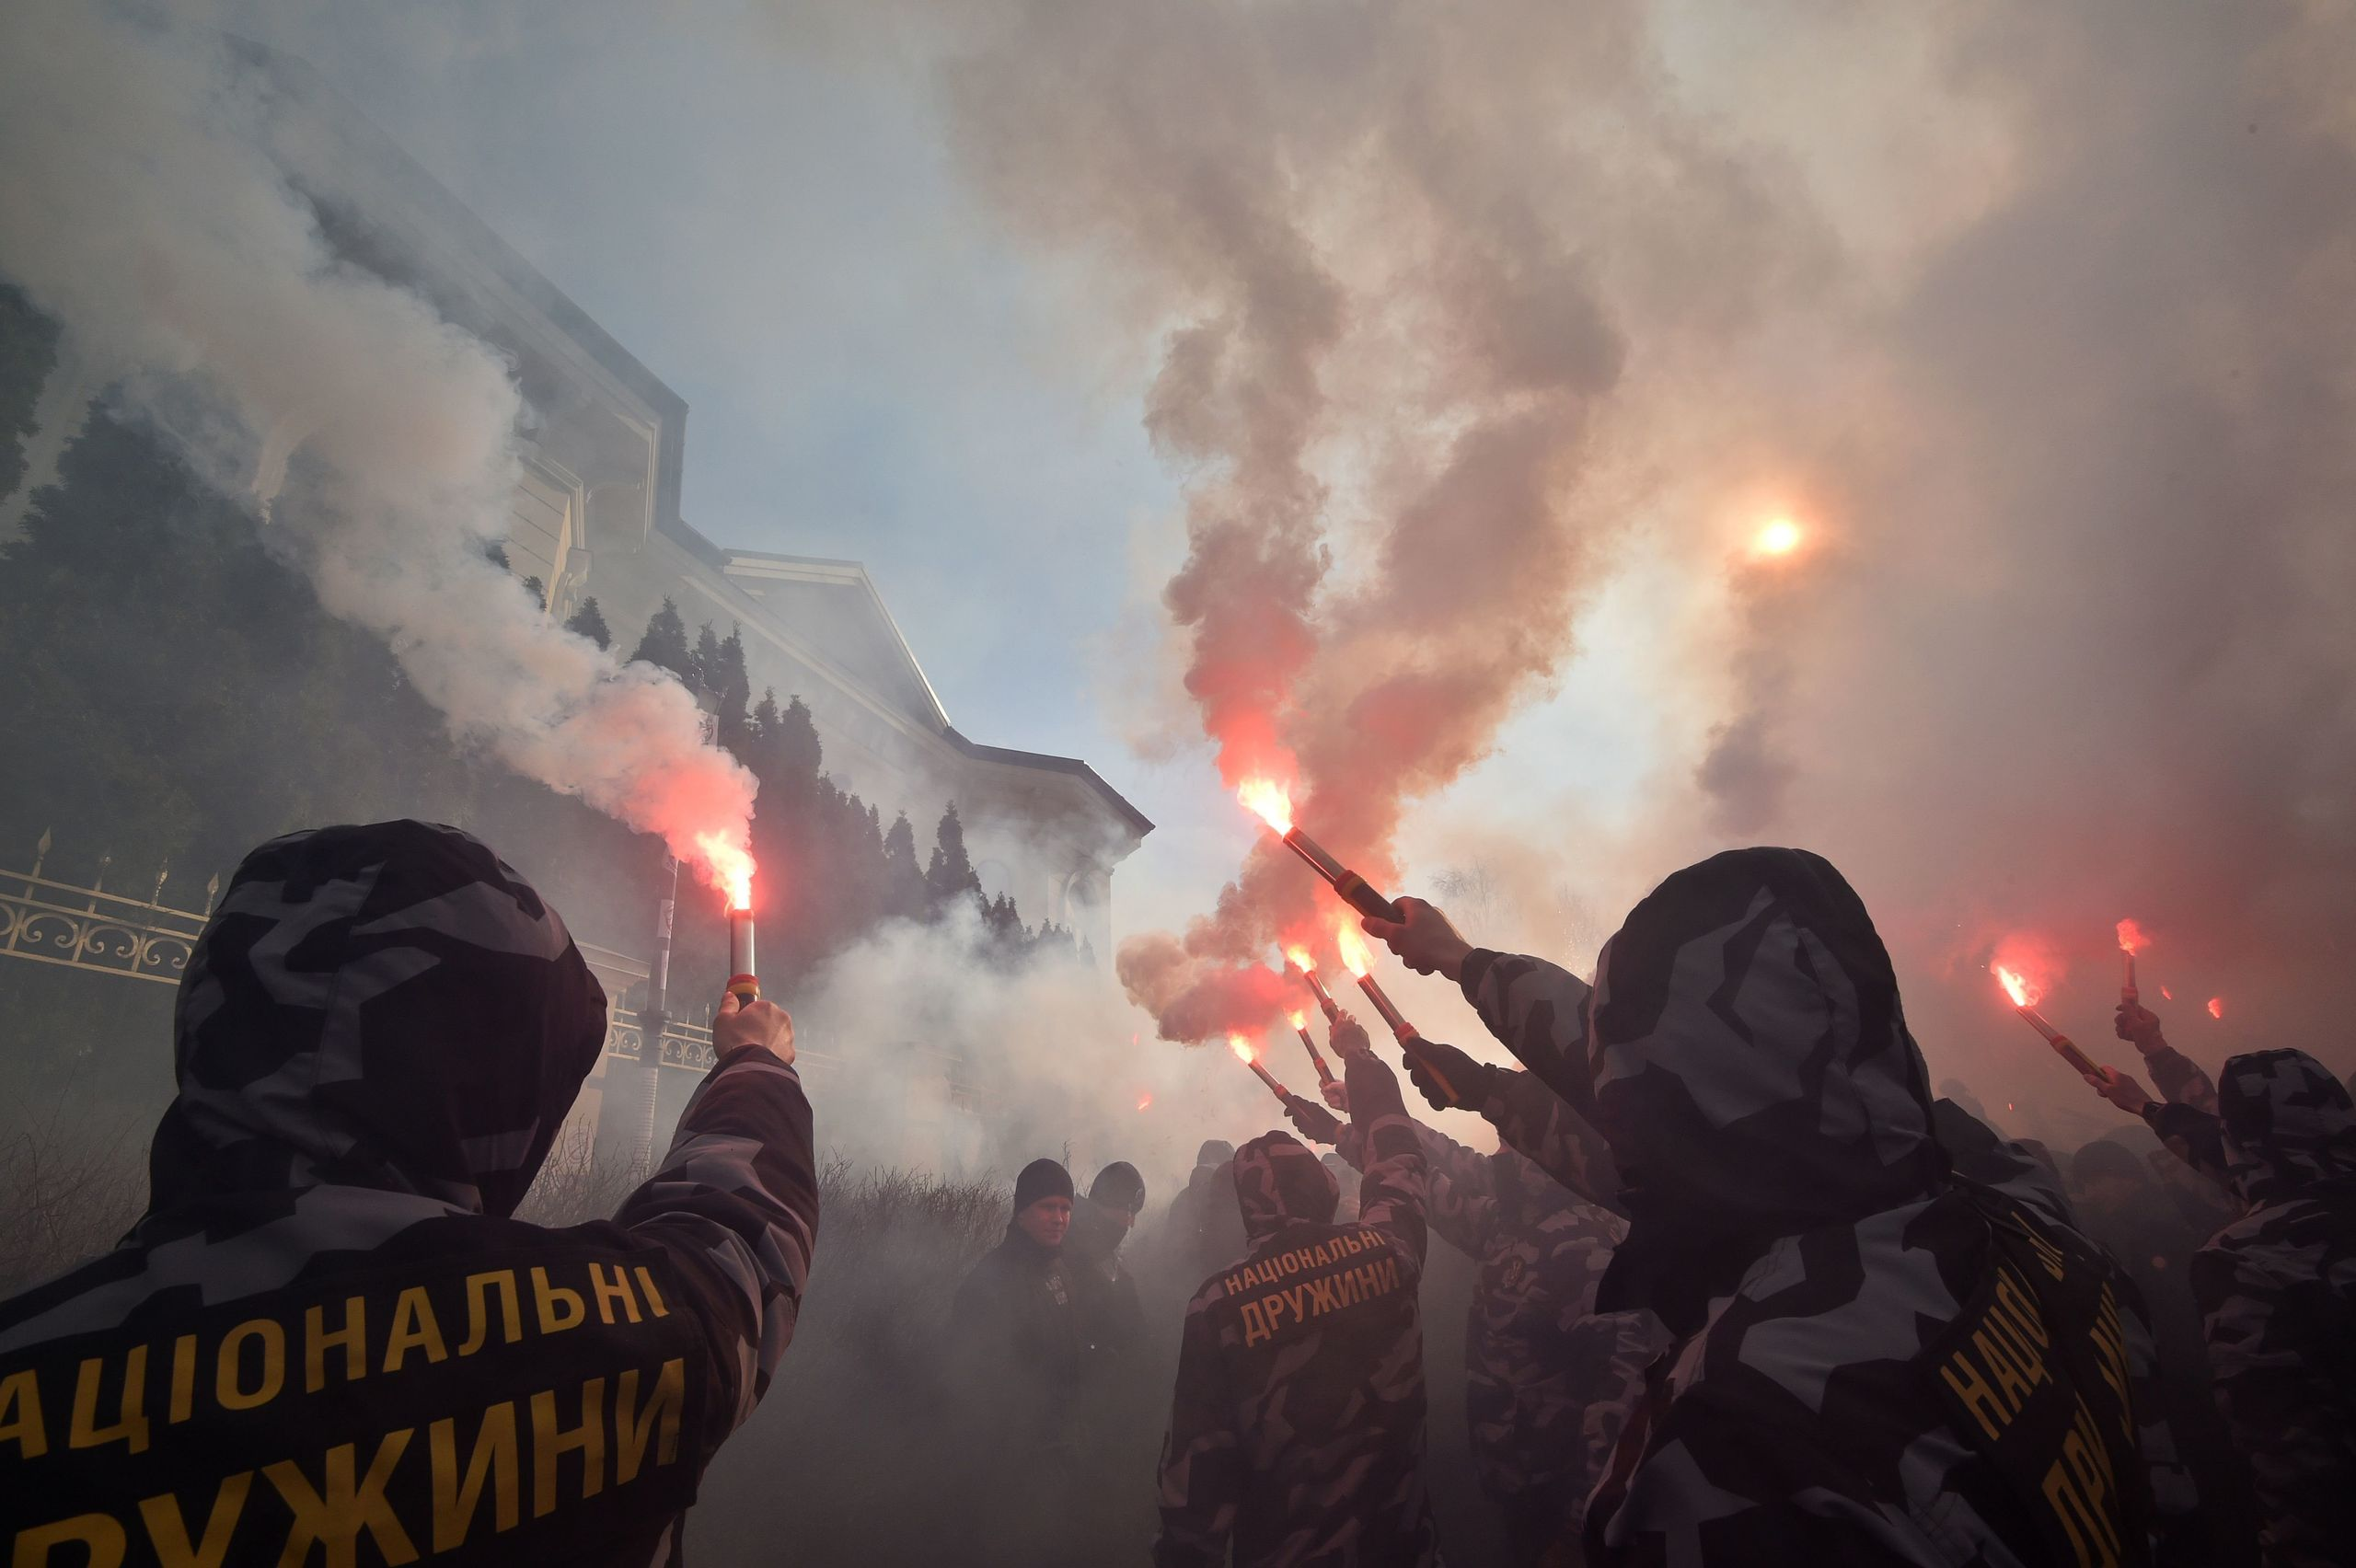 Activists and supporters of the Ukrainian far-right party National Corps burn flares in front of the private house which supp